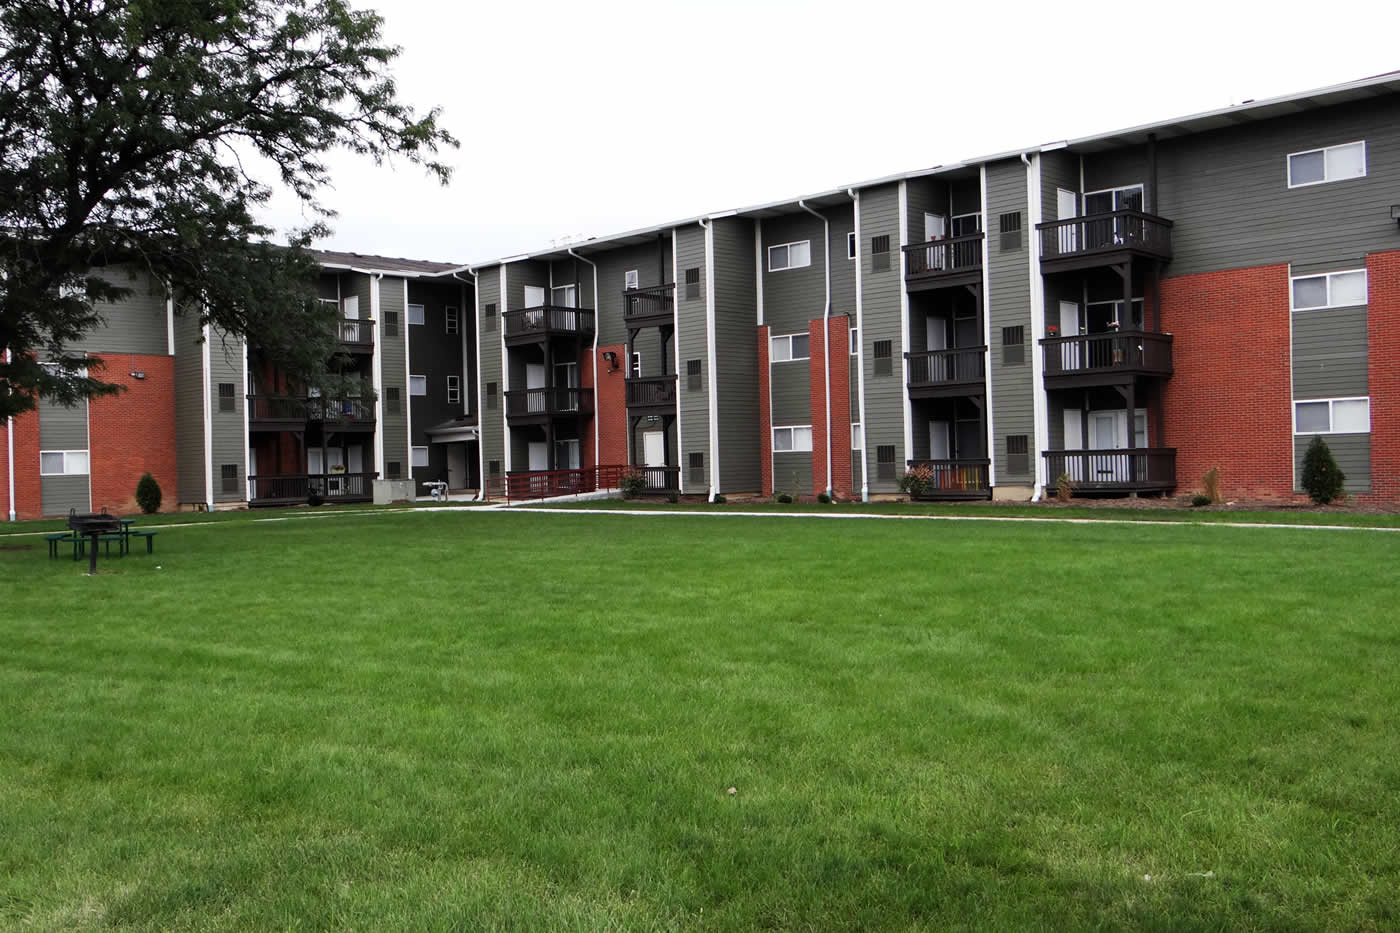 Apartments Homes For Rent In Aurora Il